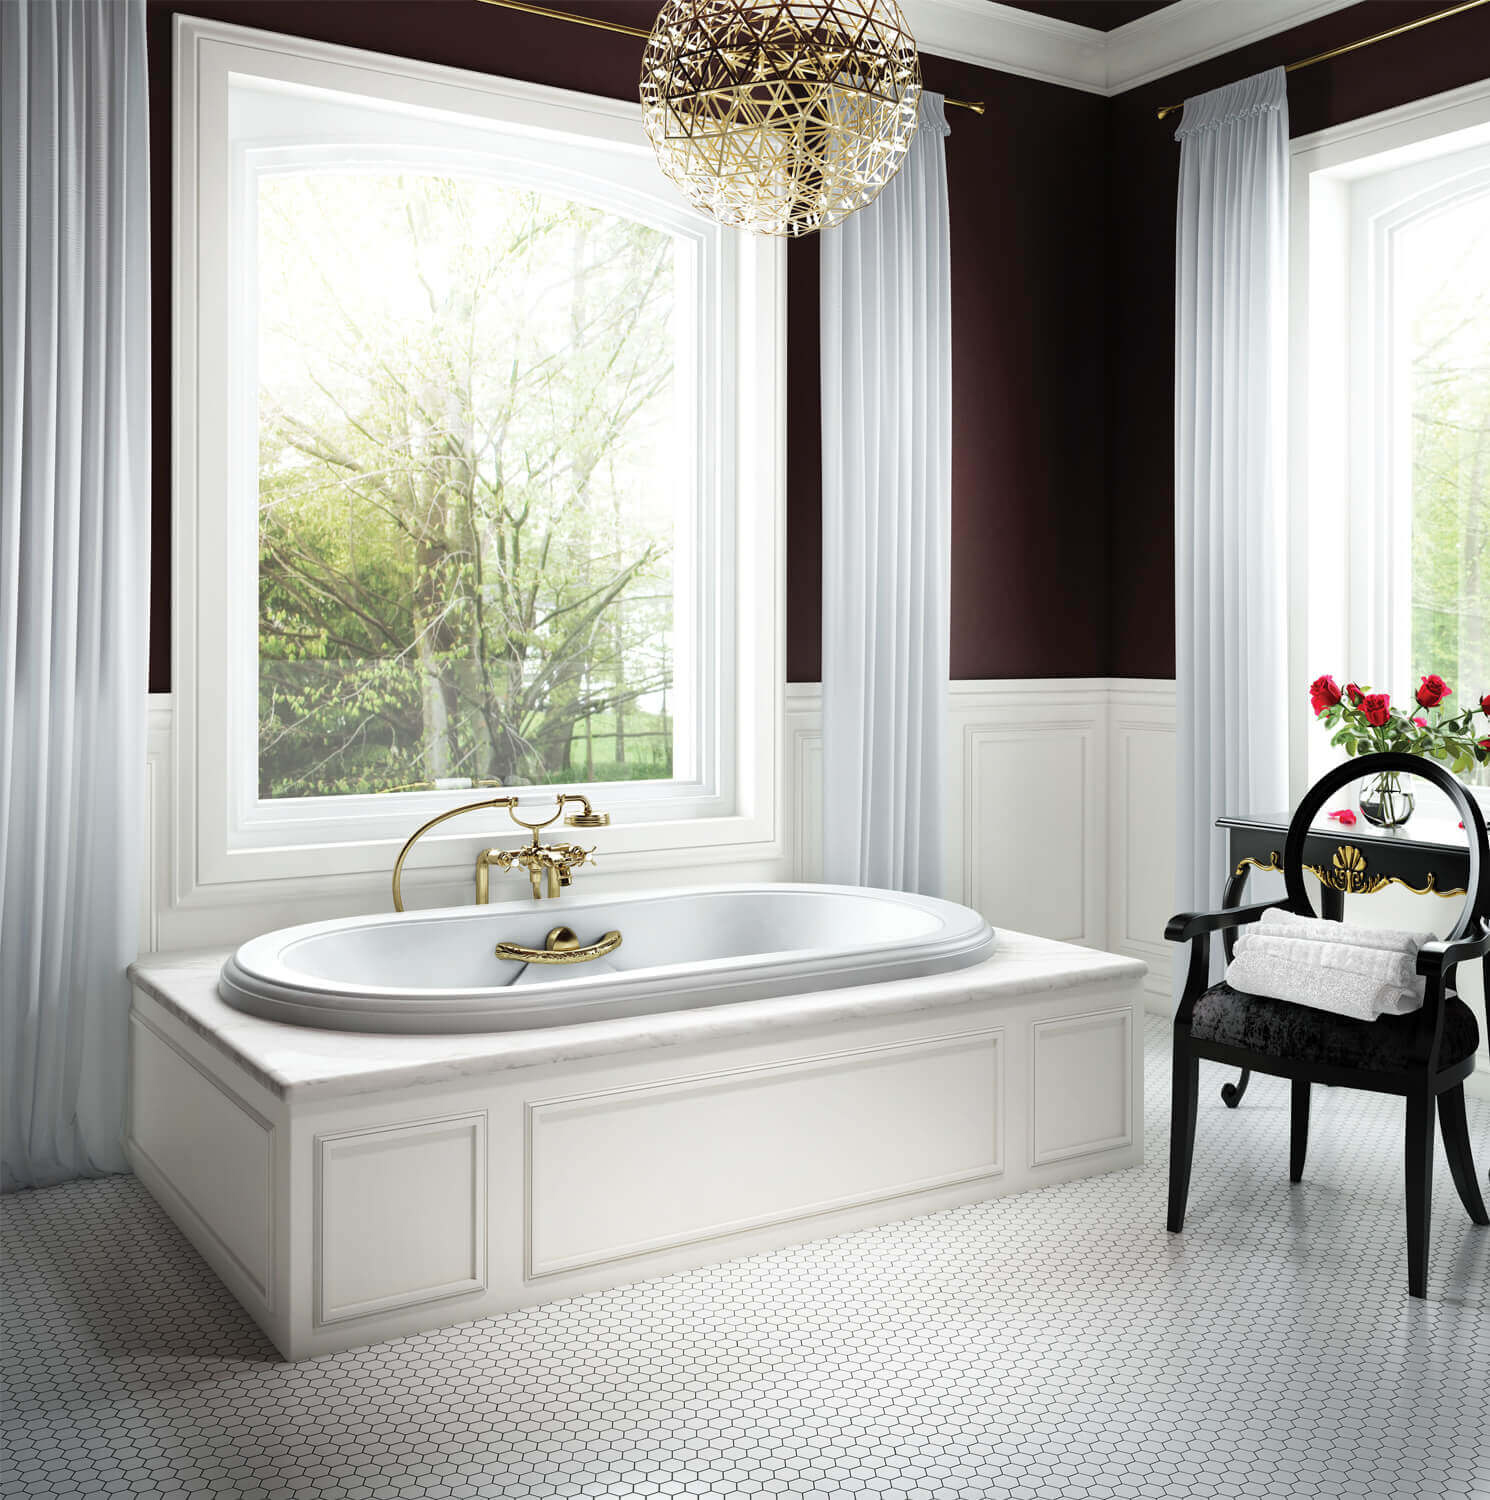 Bainultra Elegancia 6642 alcove drop-in air jet bathtub for your Victorian bathroom